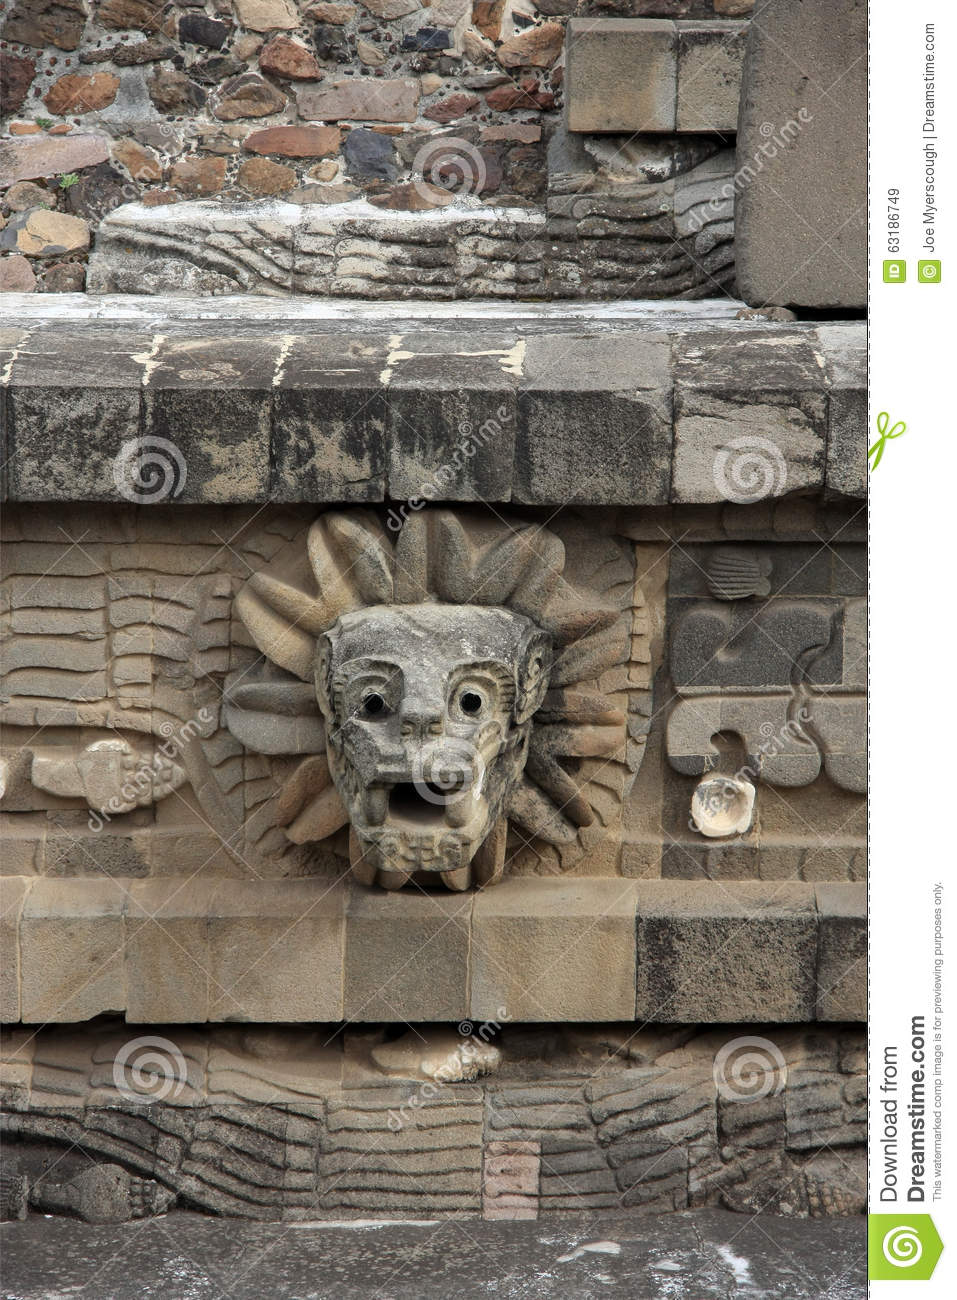 the temple of quetzalcoatl and the cult of sacred war at teotihuacan • religious cult based on sacred war and human sacrifice 69)what is the significance of teotihuacan to the aztecs a sacred city and (eg temple of quetzalcoatl.